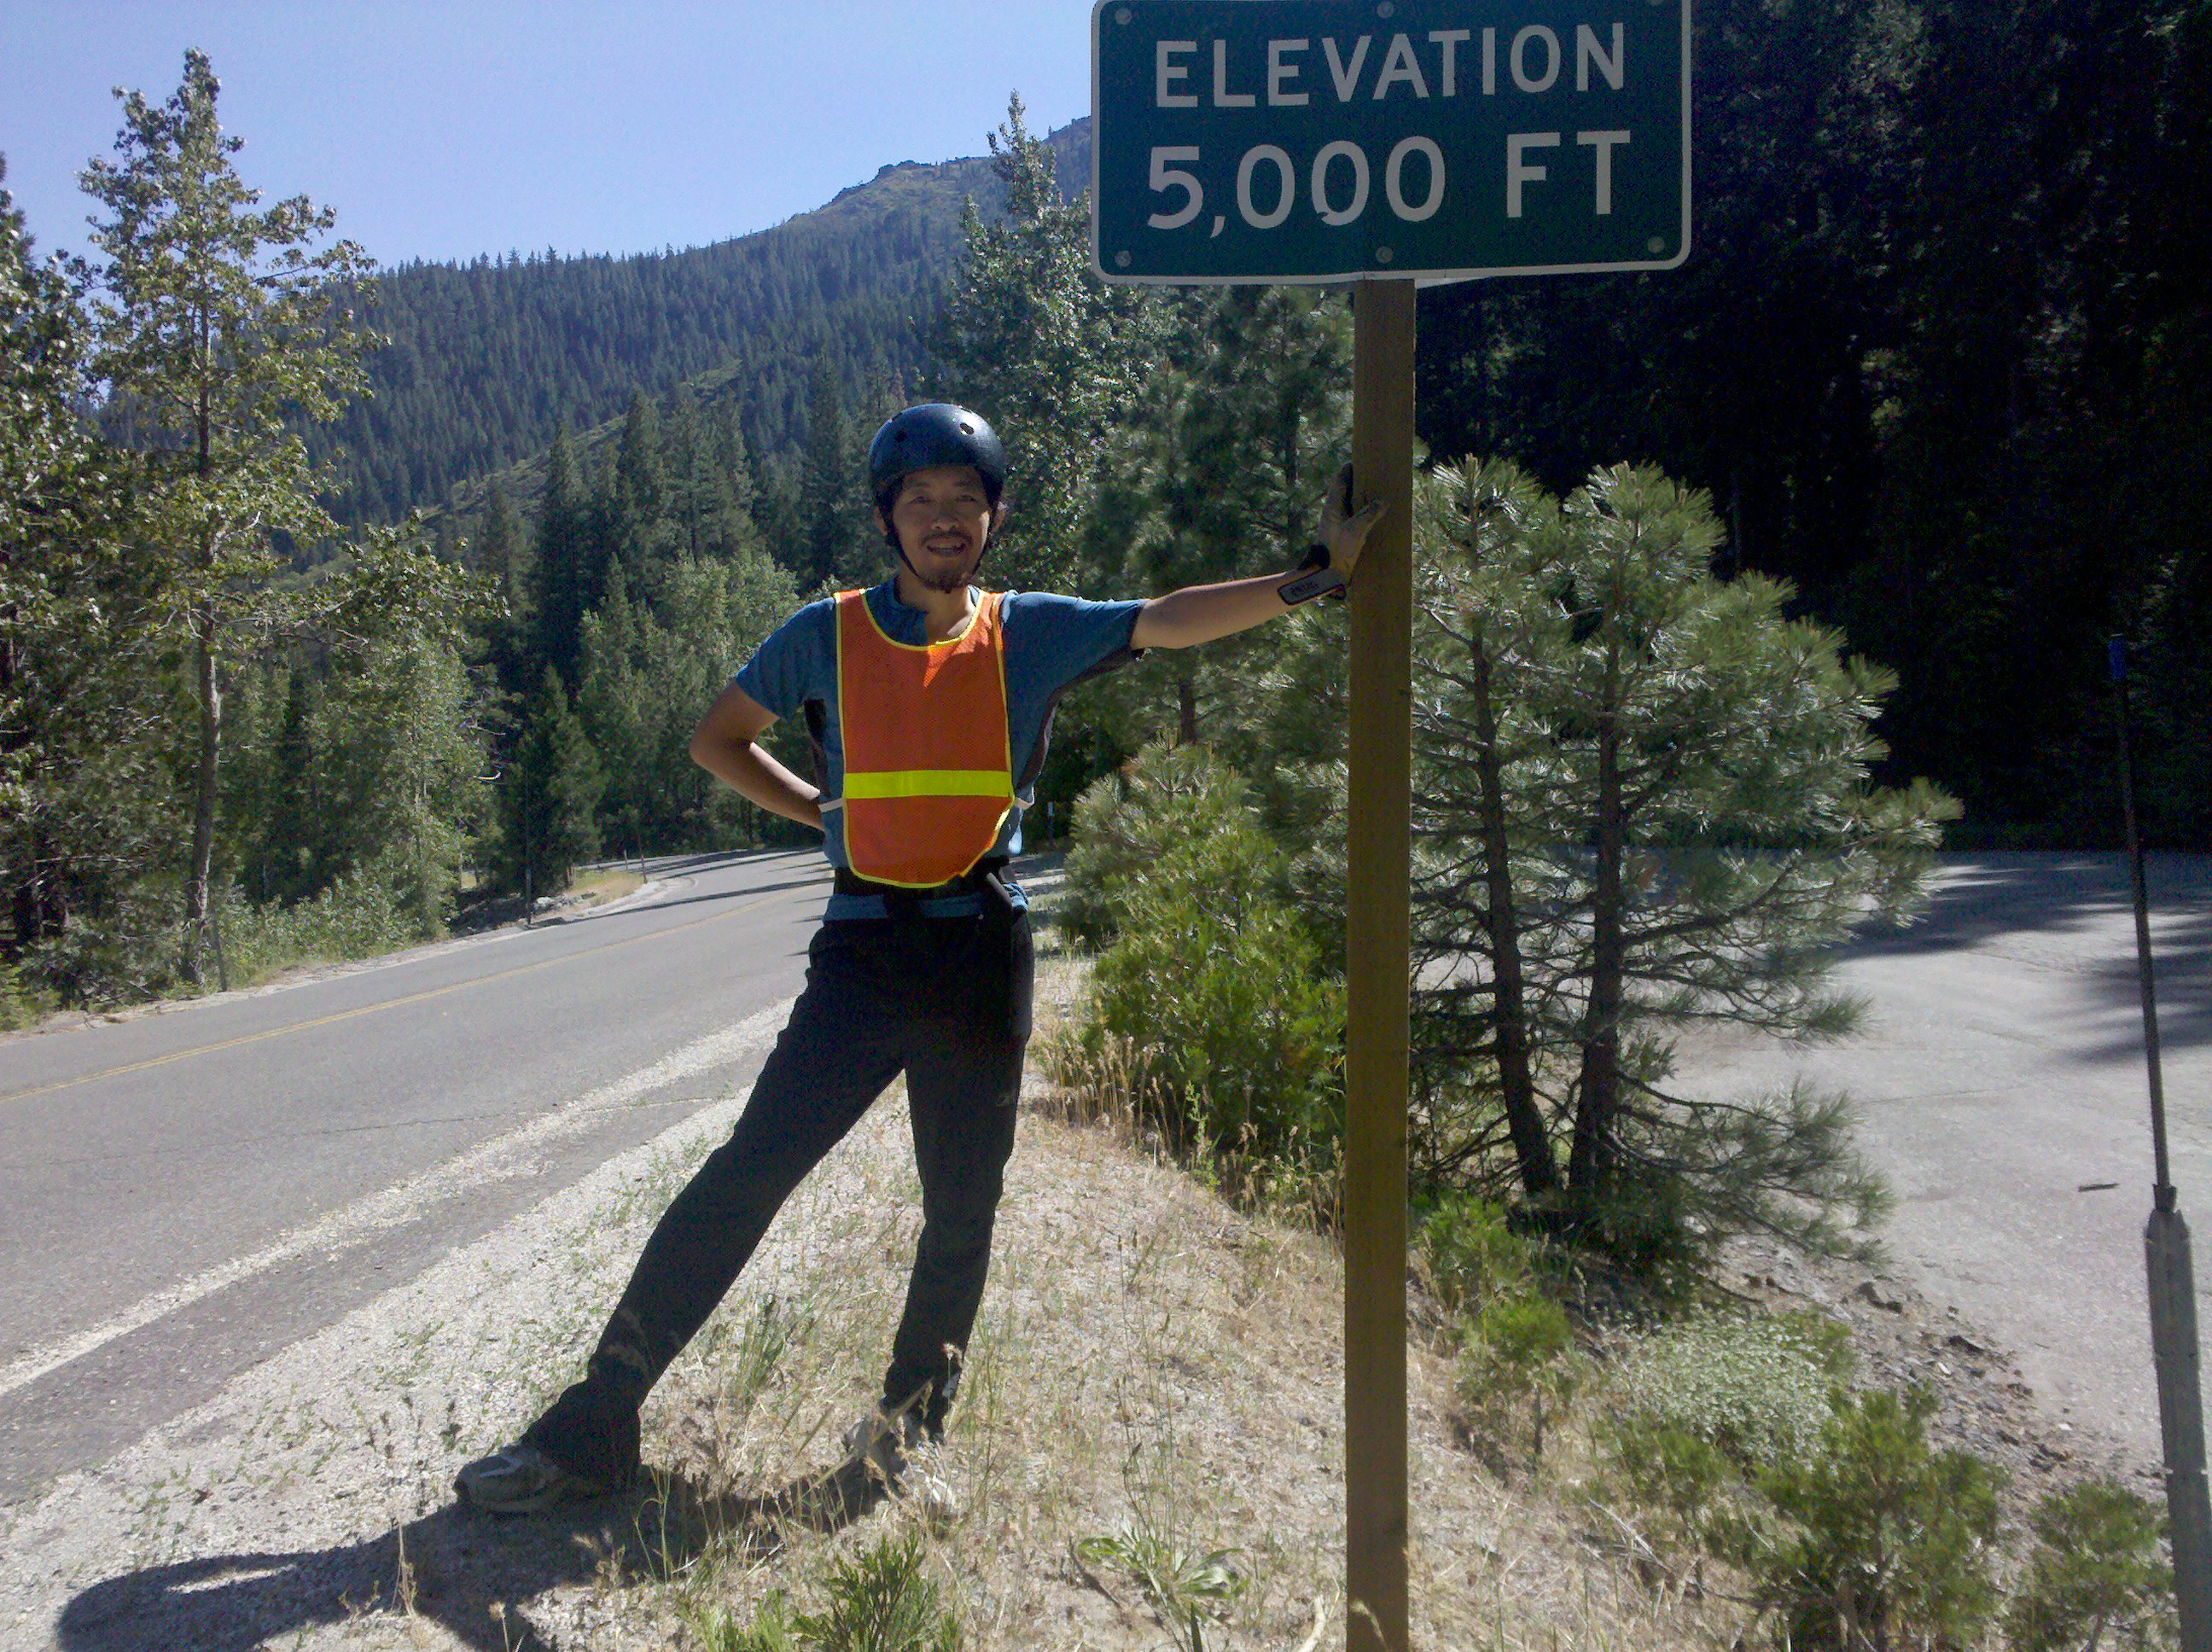 at 5000 ft on State Route 49 between Sierra City and Bassetts in the Tahoe National Forest